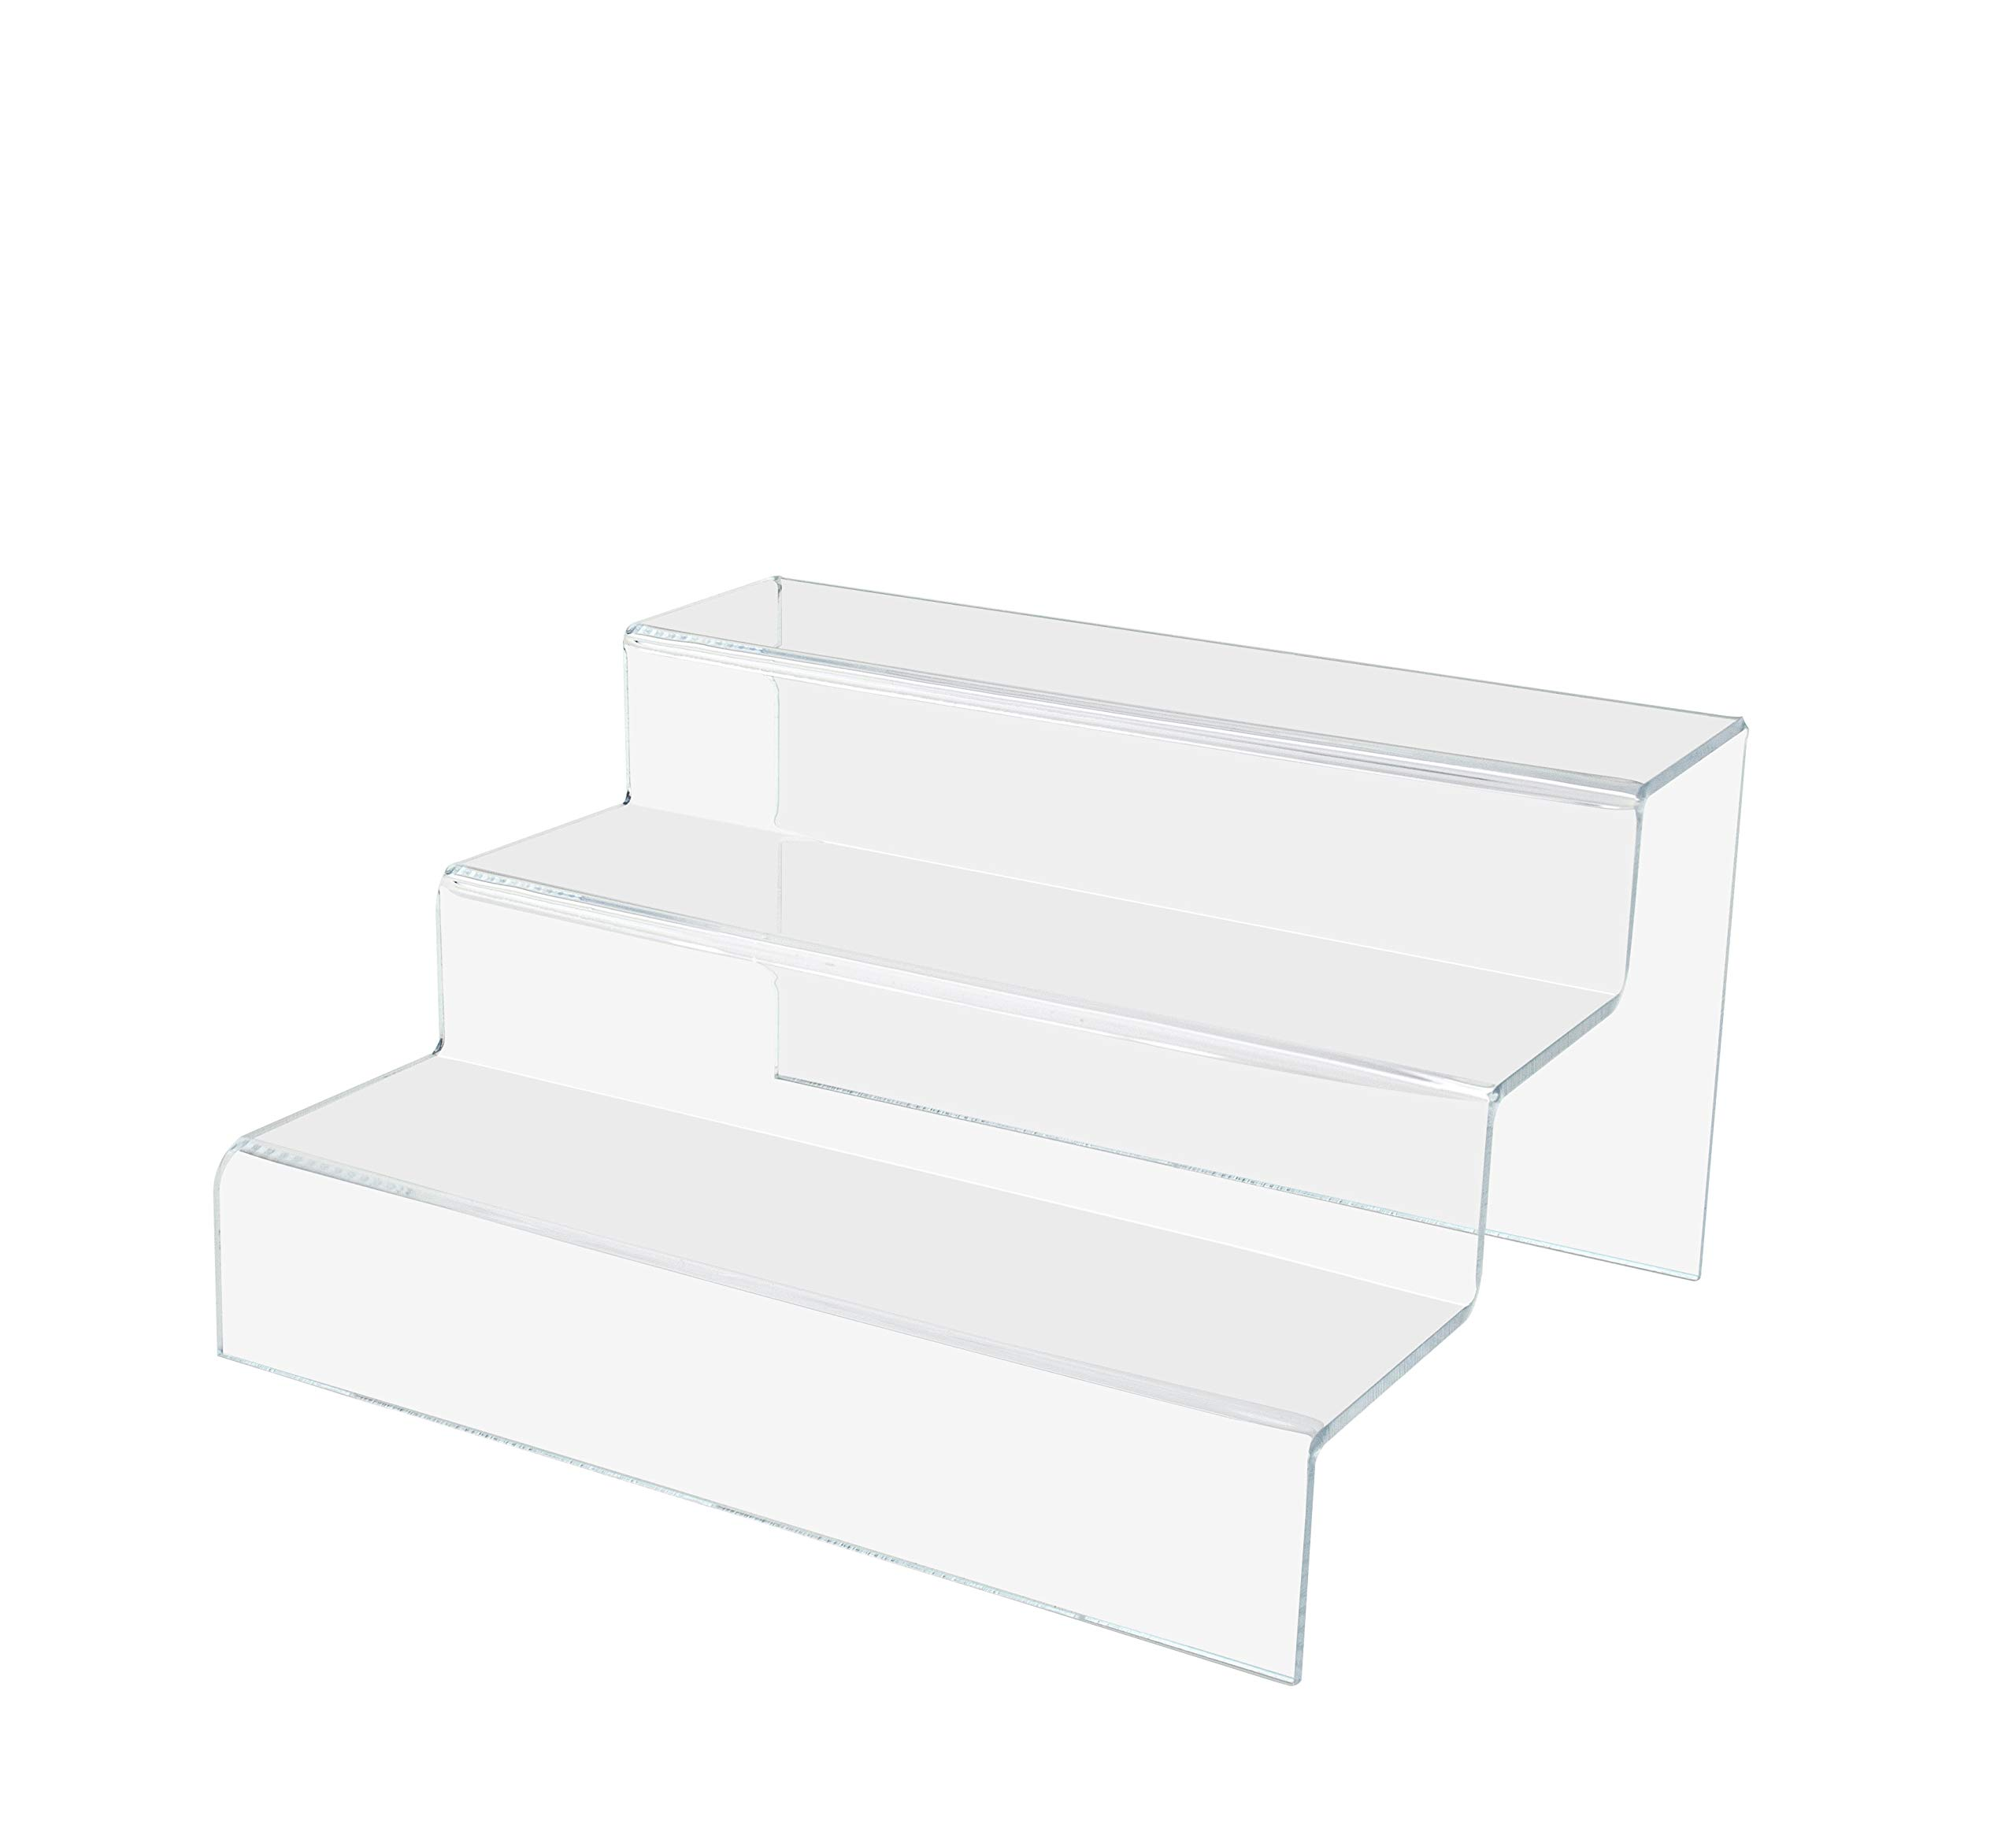 Marketing Holders 3 Tier Double Stairway Retail Display Countertop Trinket Collectible Showcase Tiered Riser Stand Pack of 5 by Marketing Holders